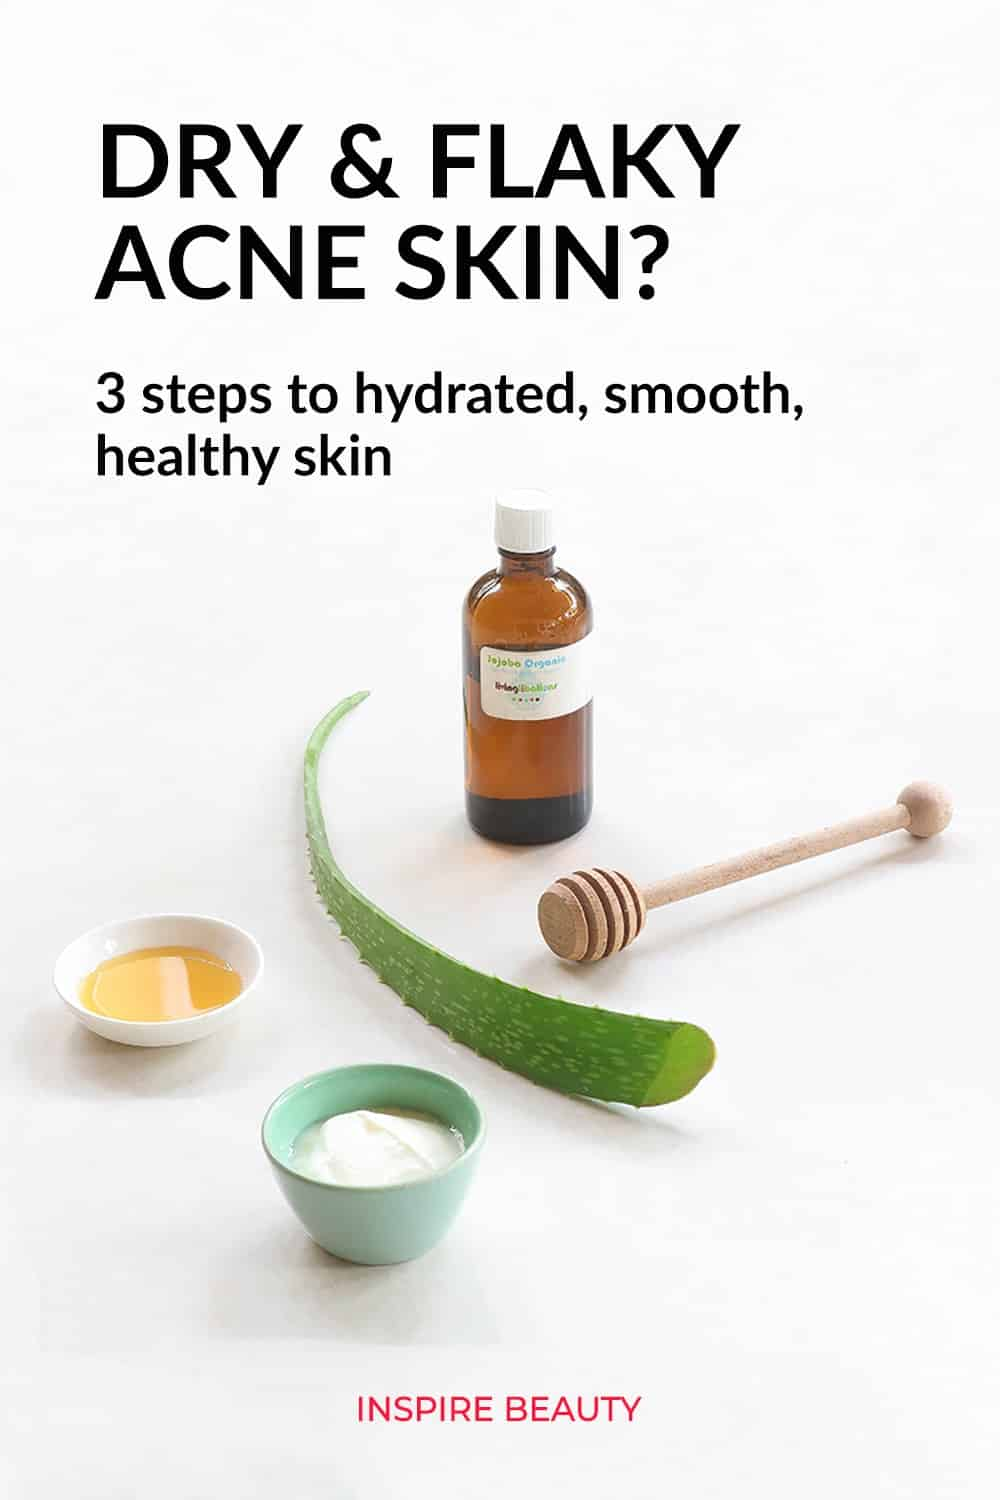 Skin care tips for dry flaky acne prone skin.